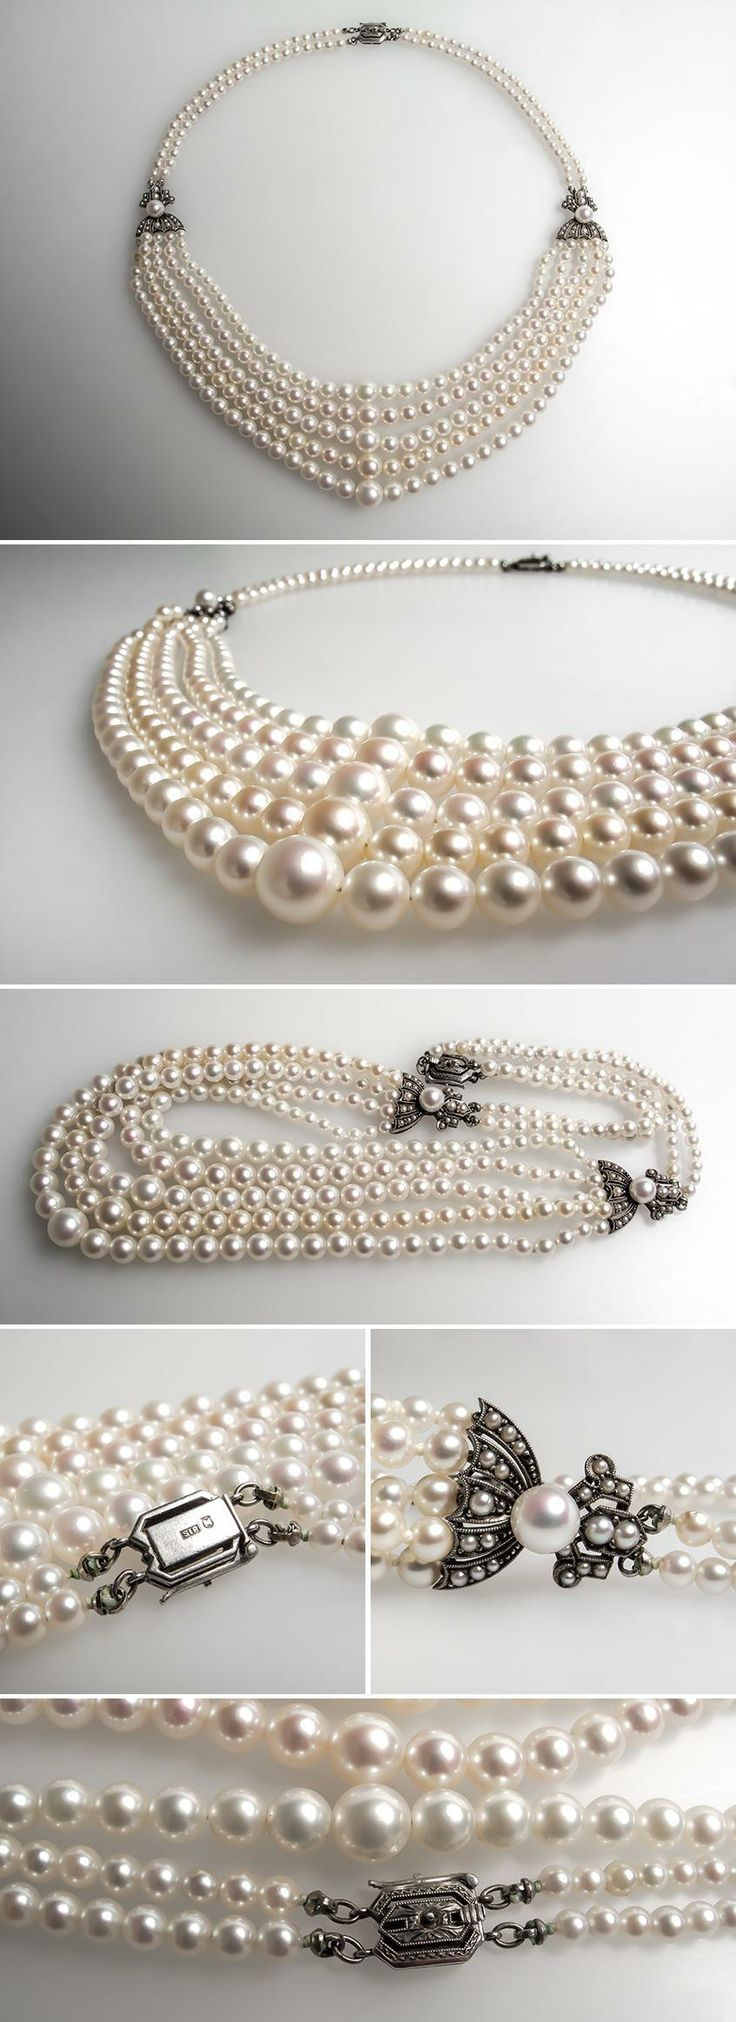 products pre diamond earrings pel akoya dangle in galleryimg motion pearls white mikimoto drop owned